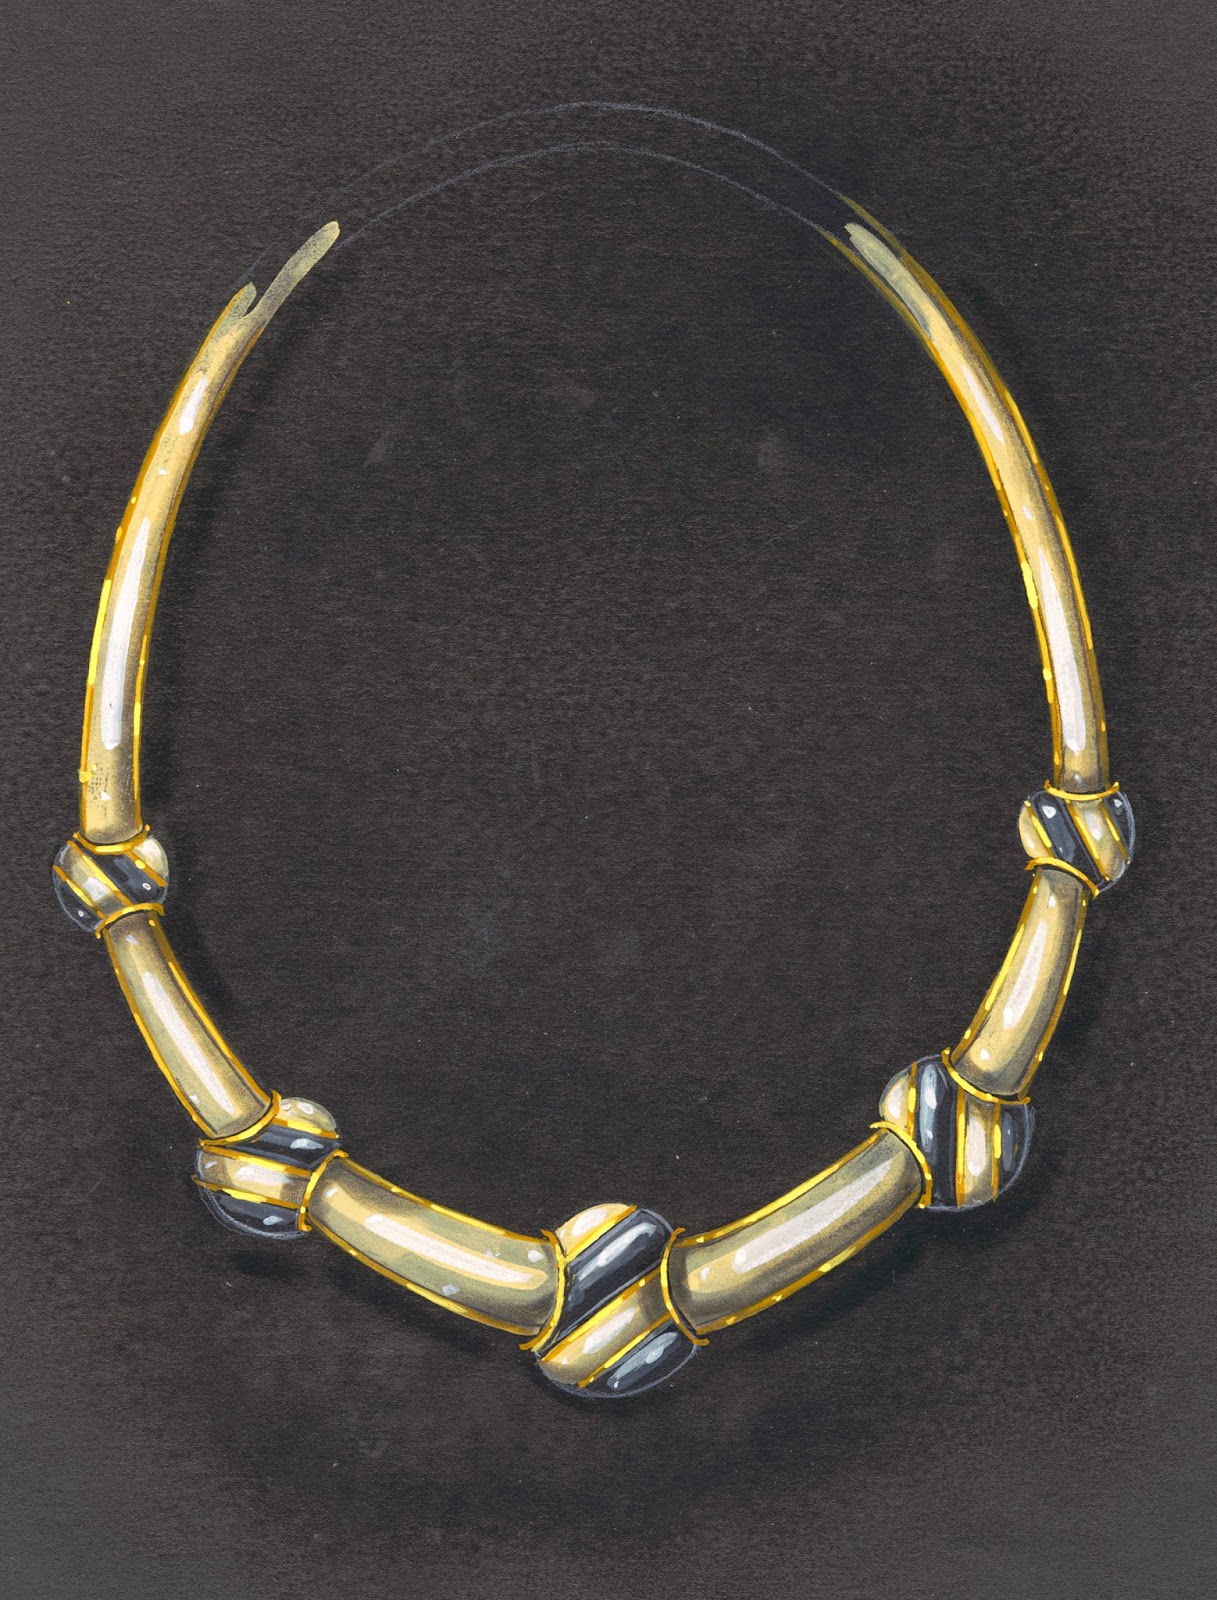 A color drawing of a necklace.